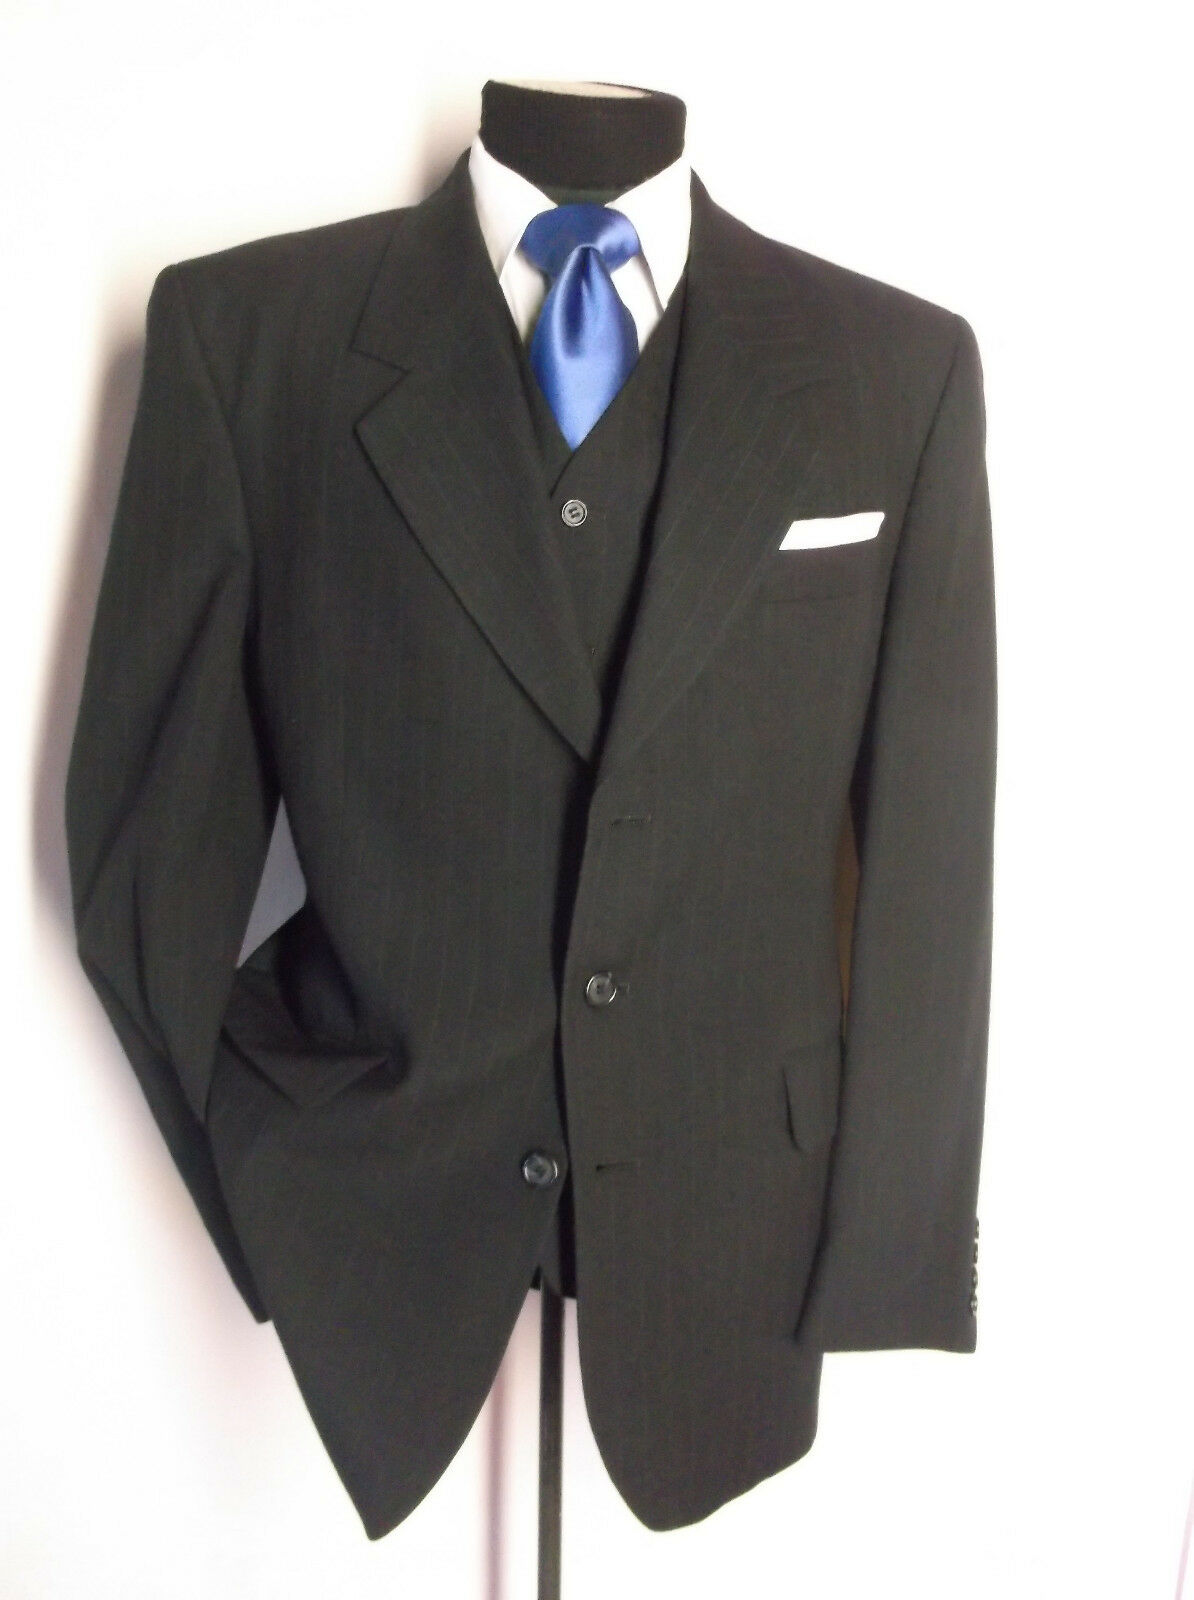 Fantastic 3PC Suit Navy Blau Stripe 3 Button 40R Pants W 34